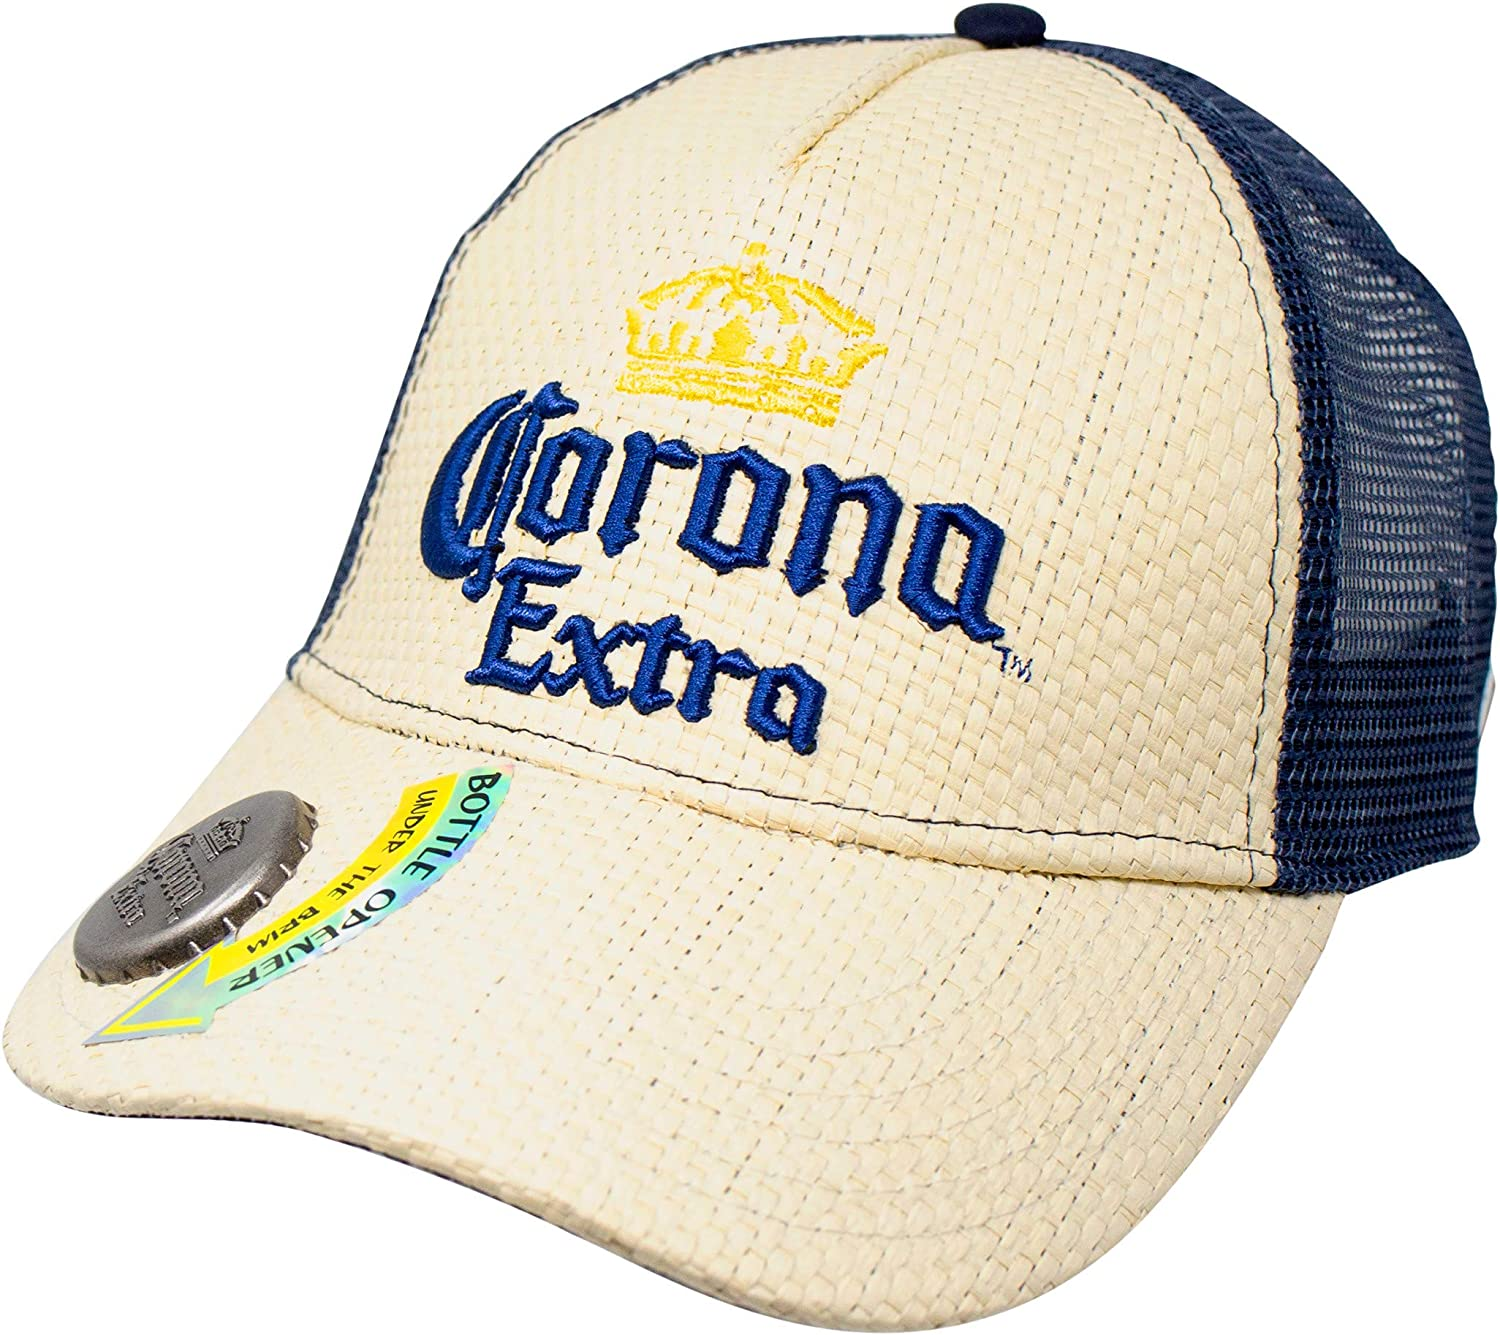 Corona Extra Bottle Opener Mesh Trucker Baseball Adjustable Snapback Cap Hat